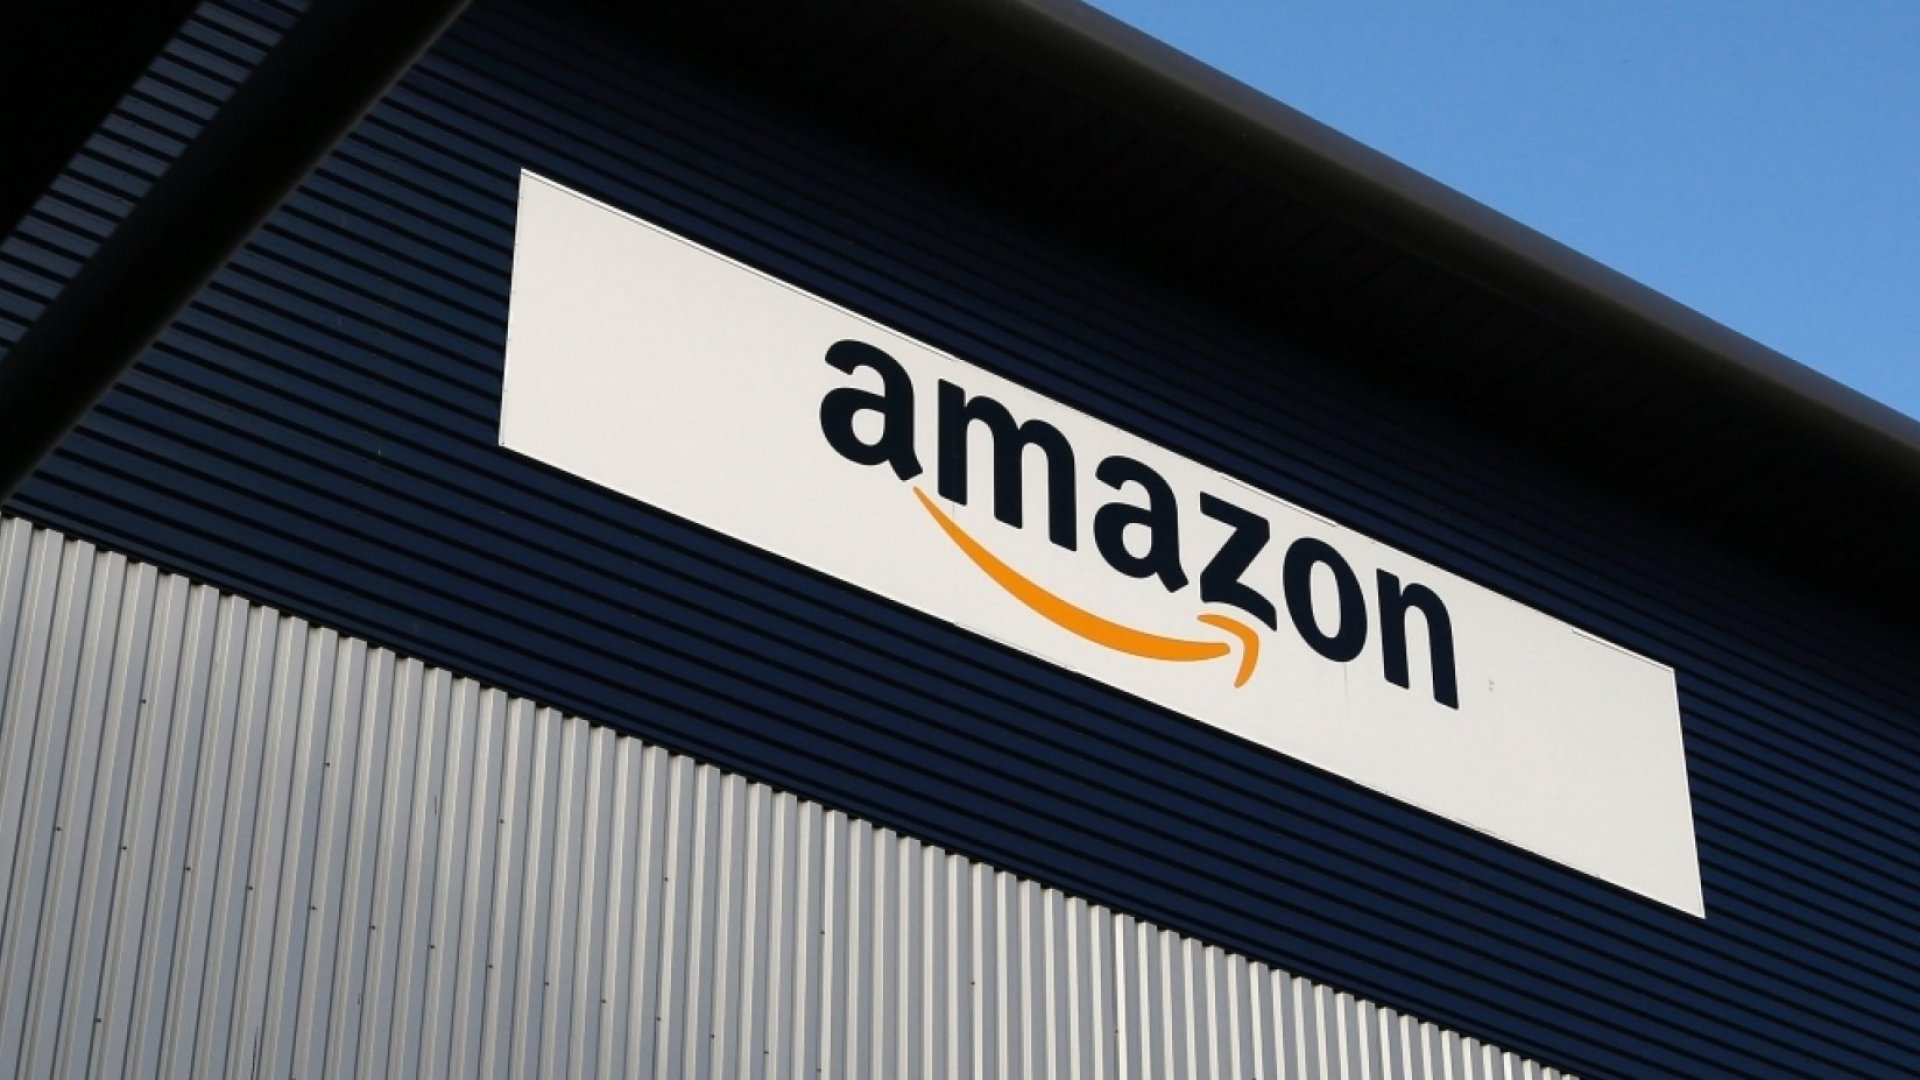 HQ2 Update: Amazon Names the 20 Finalists for Its Second Headquarters